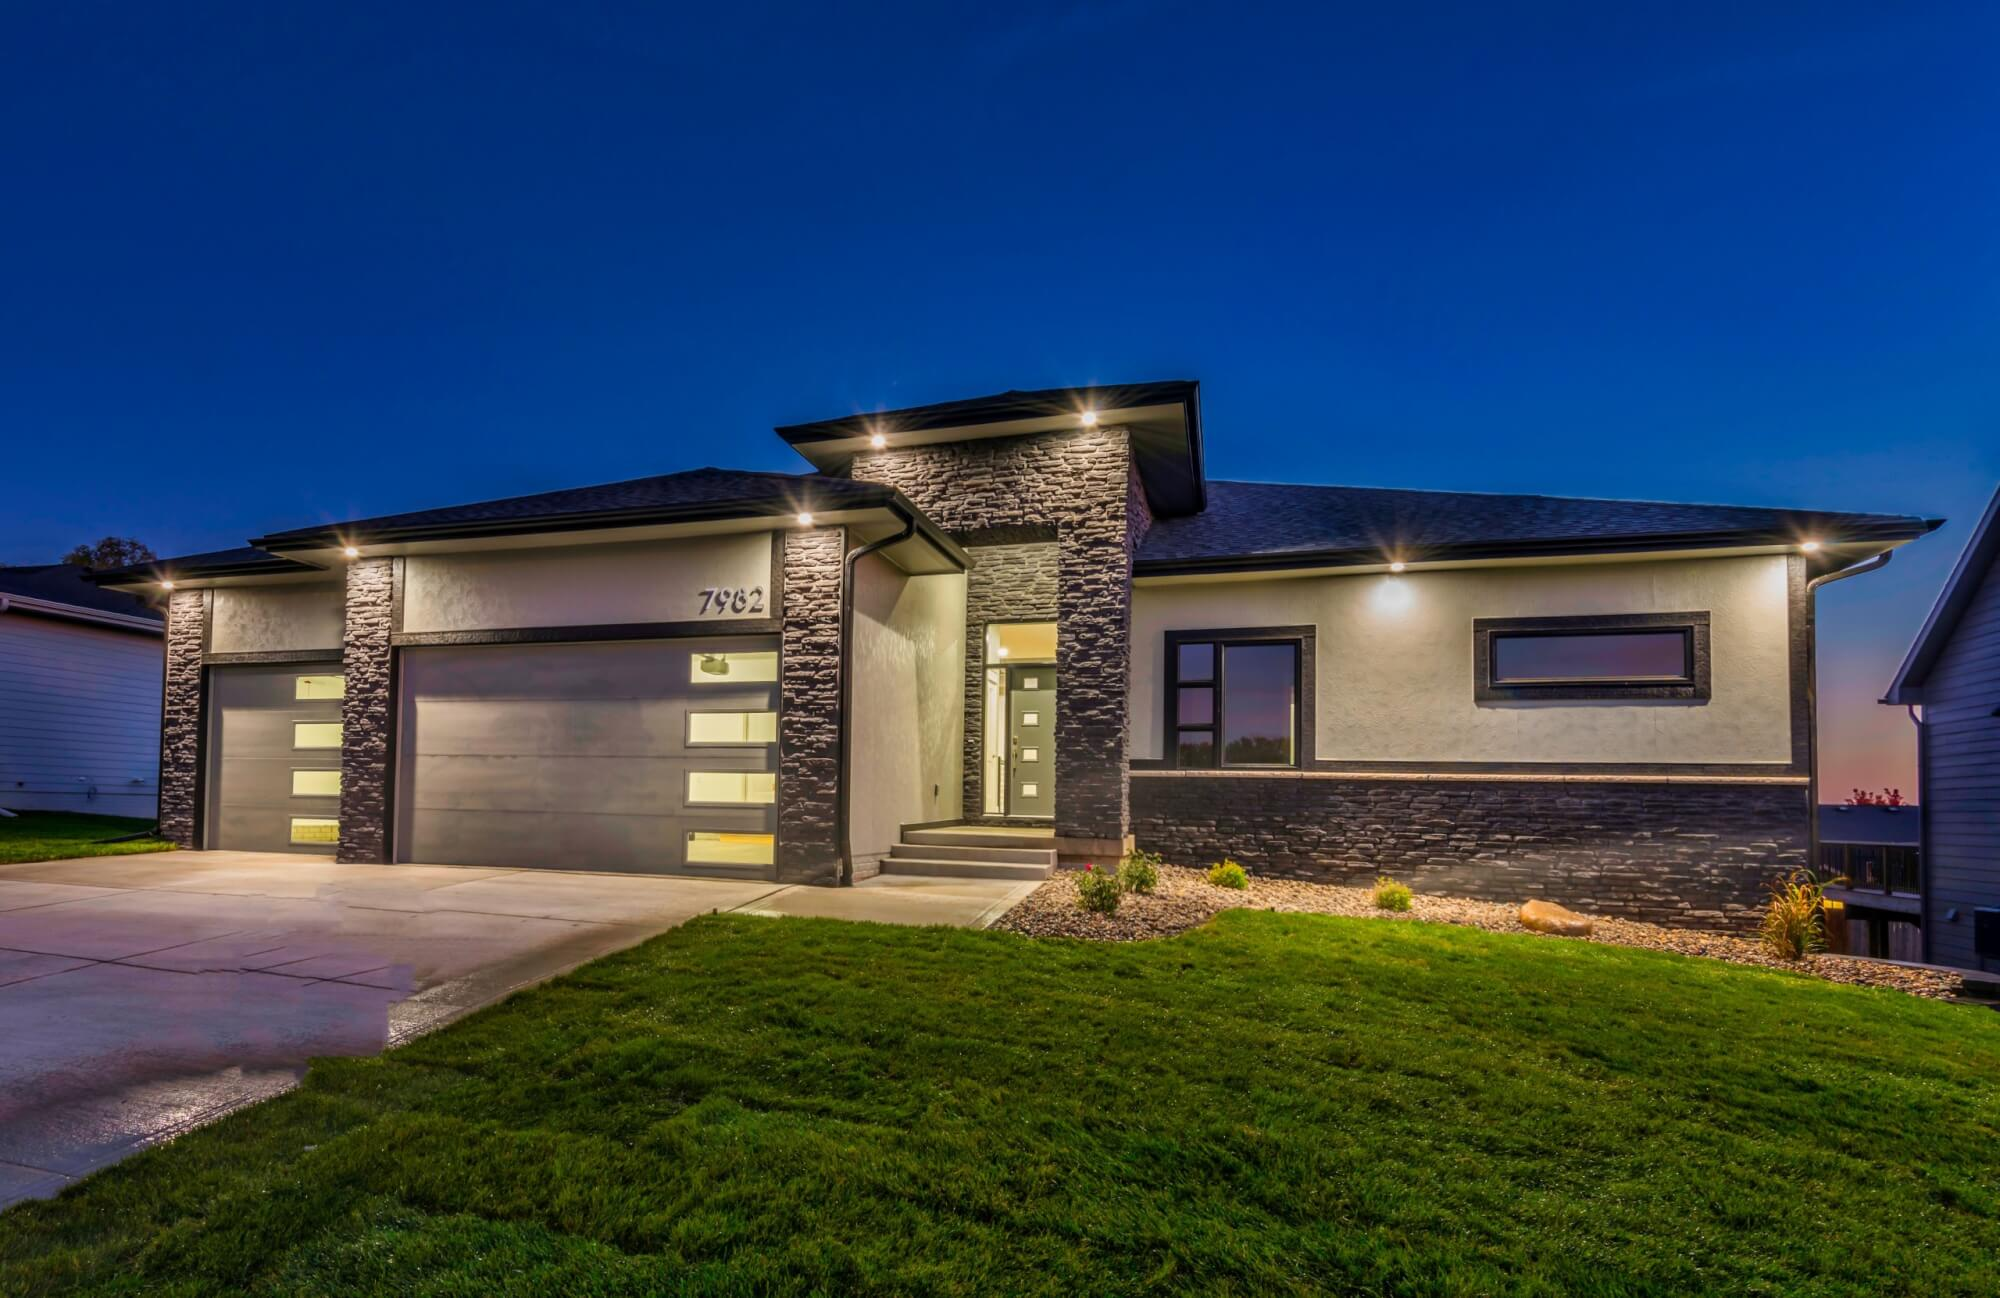 A grey stone house with exterior lights on at nightime, built by Kruse Development.